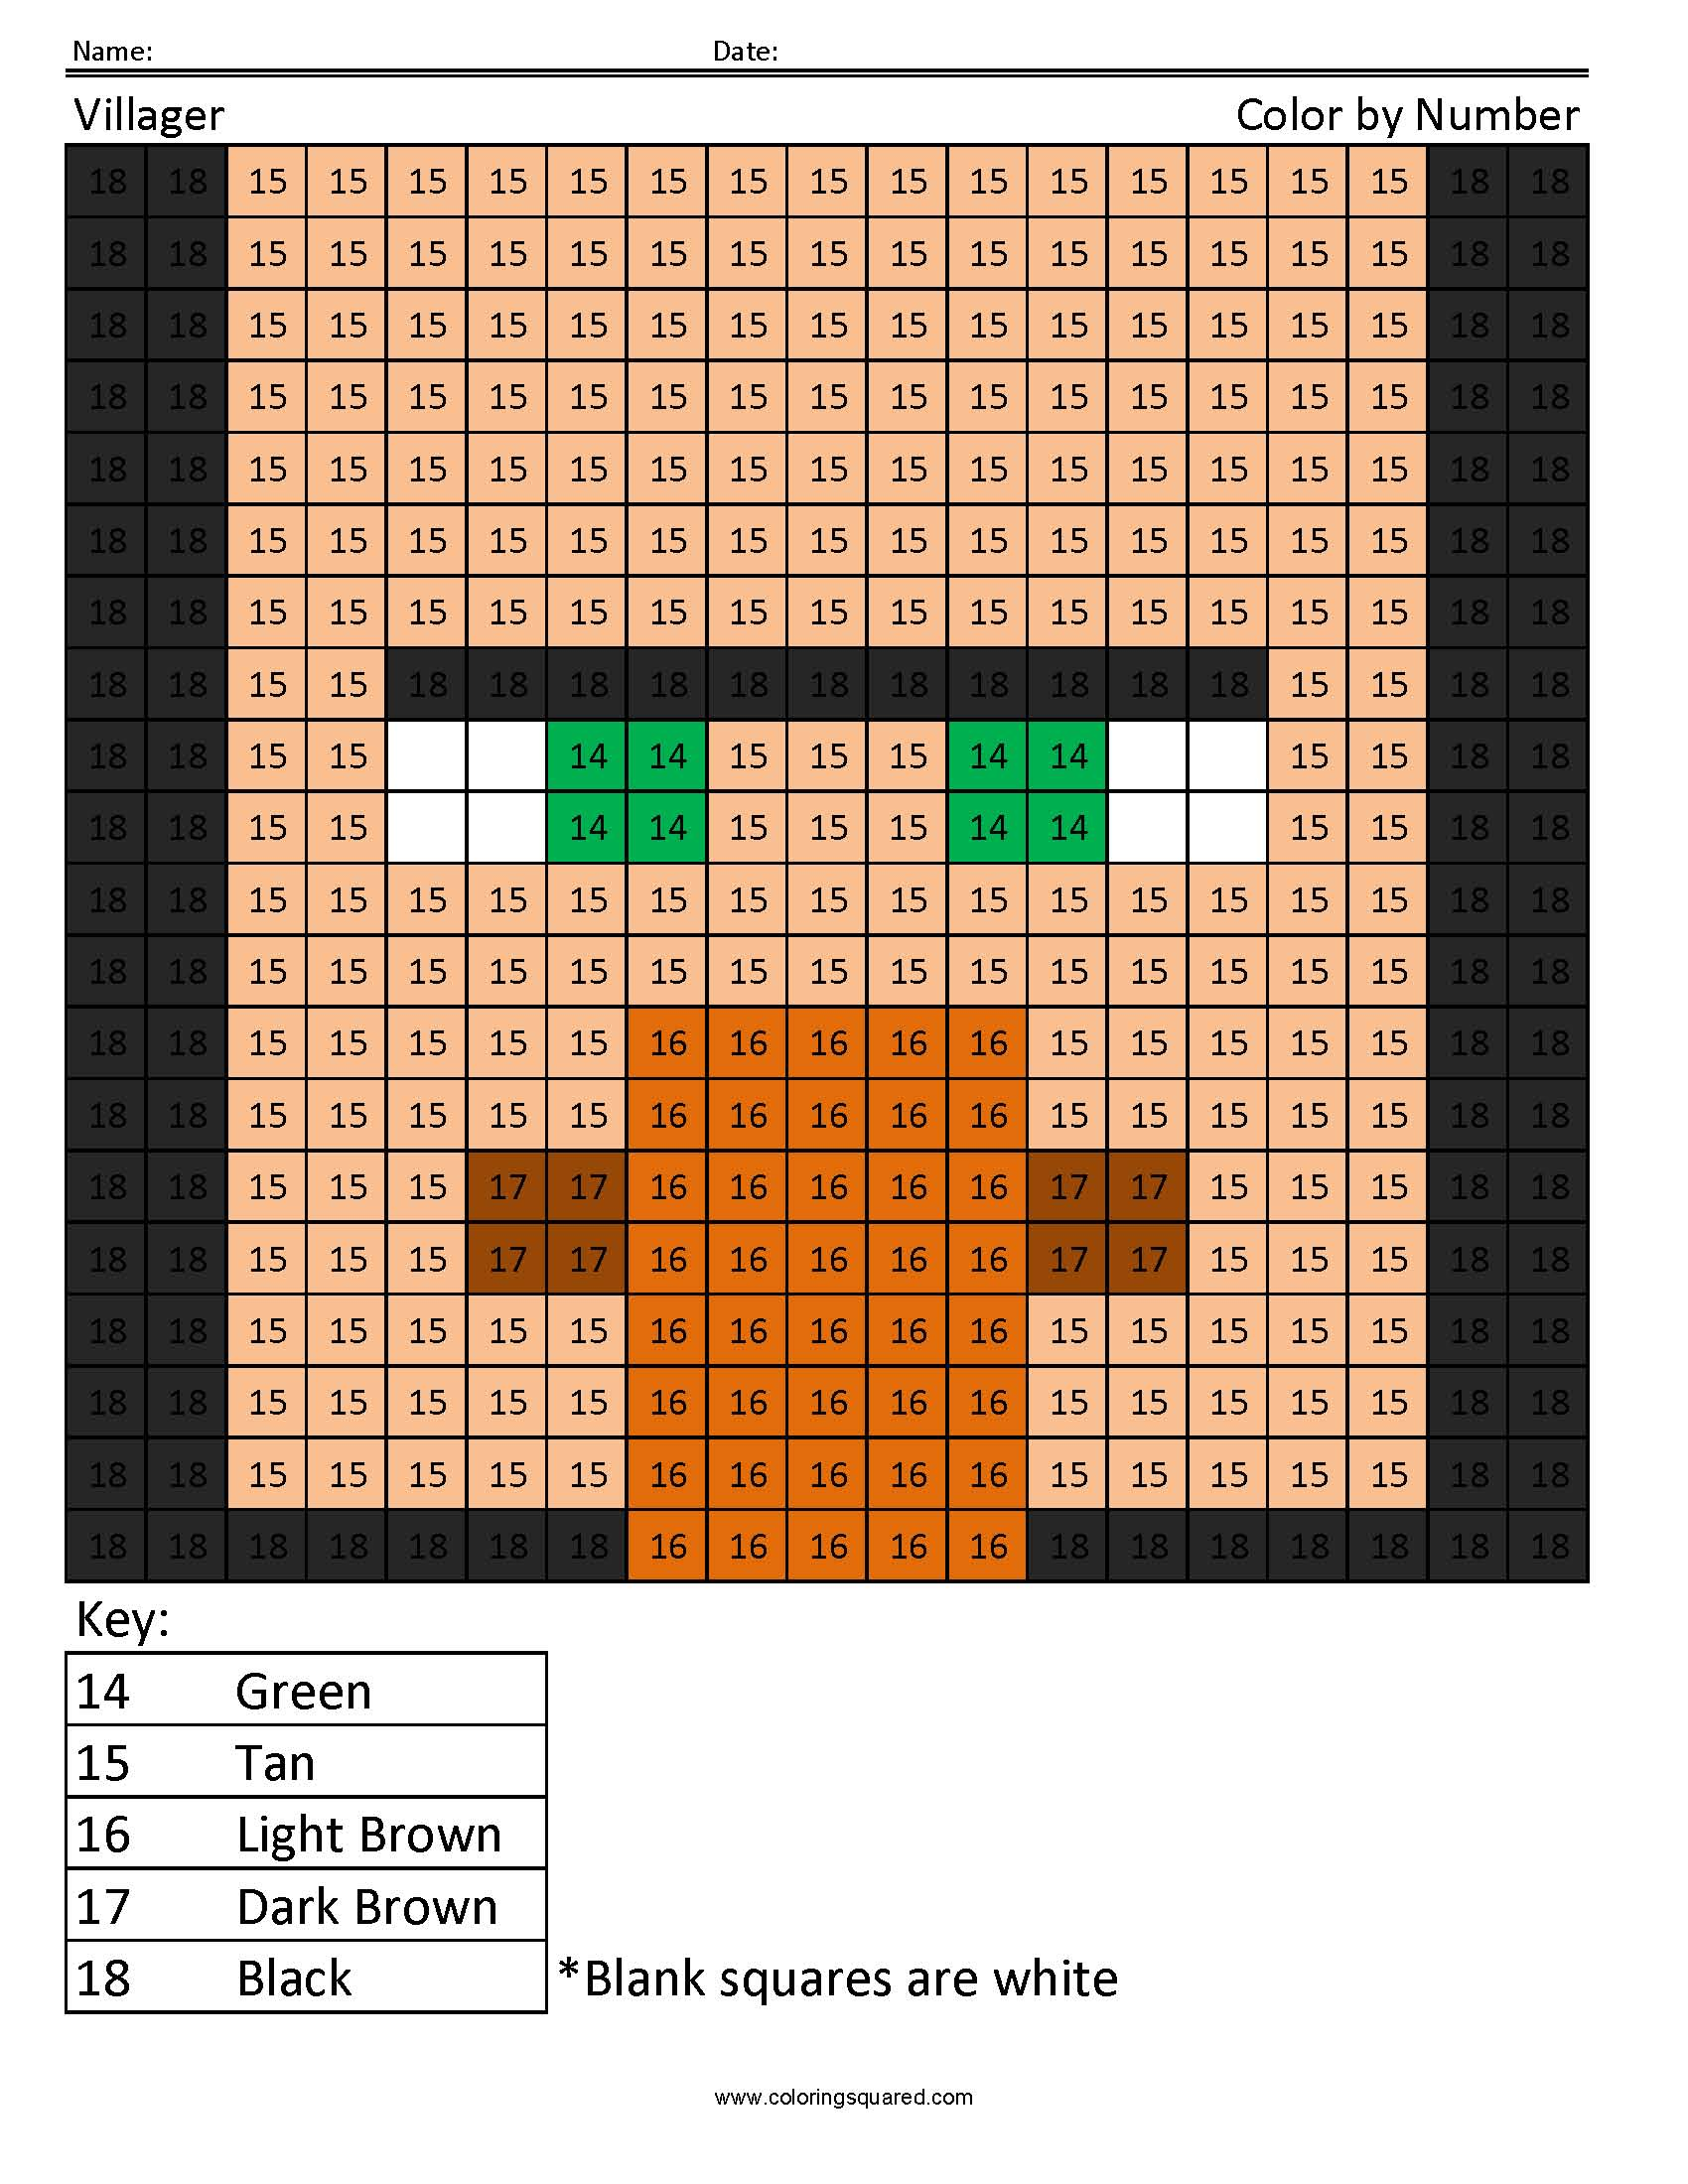 14CN Villager minecraft color by number - Coloring Squared